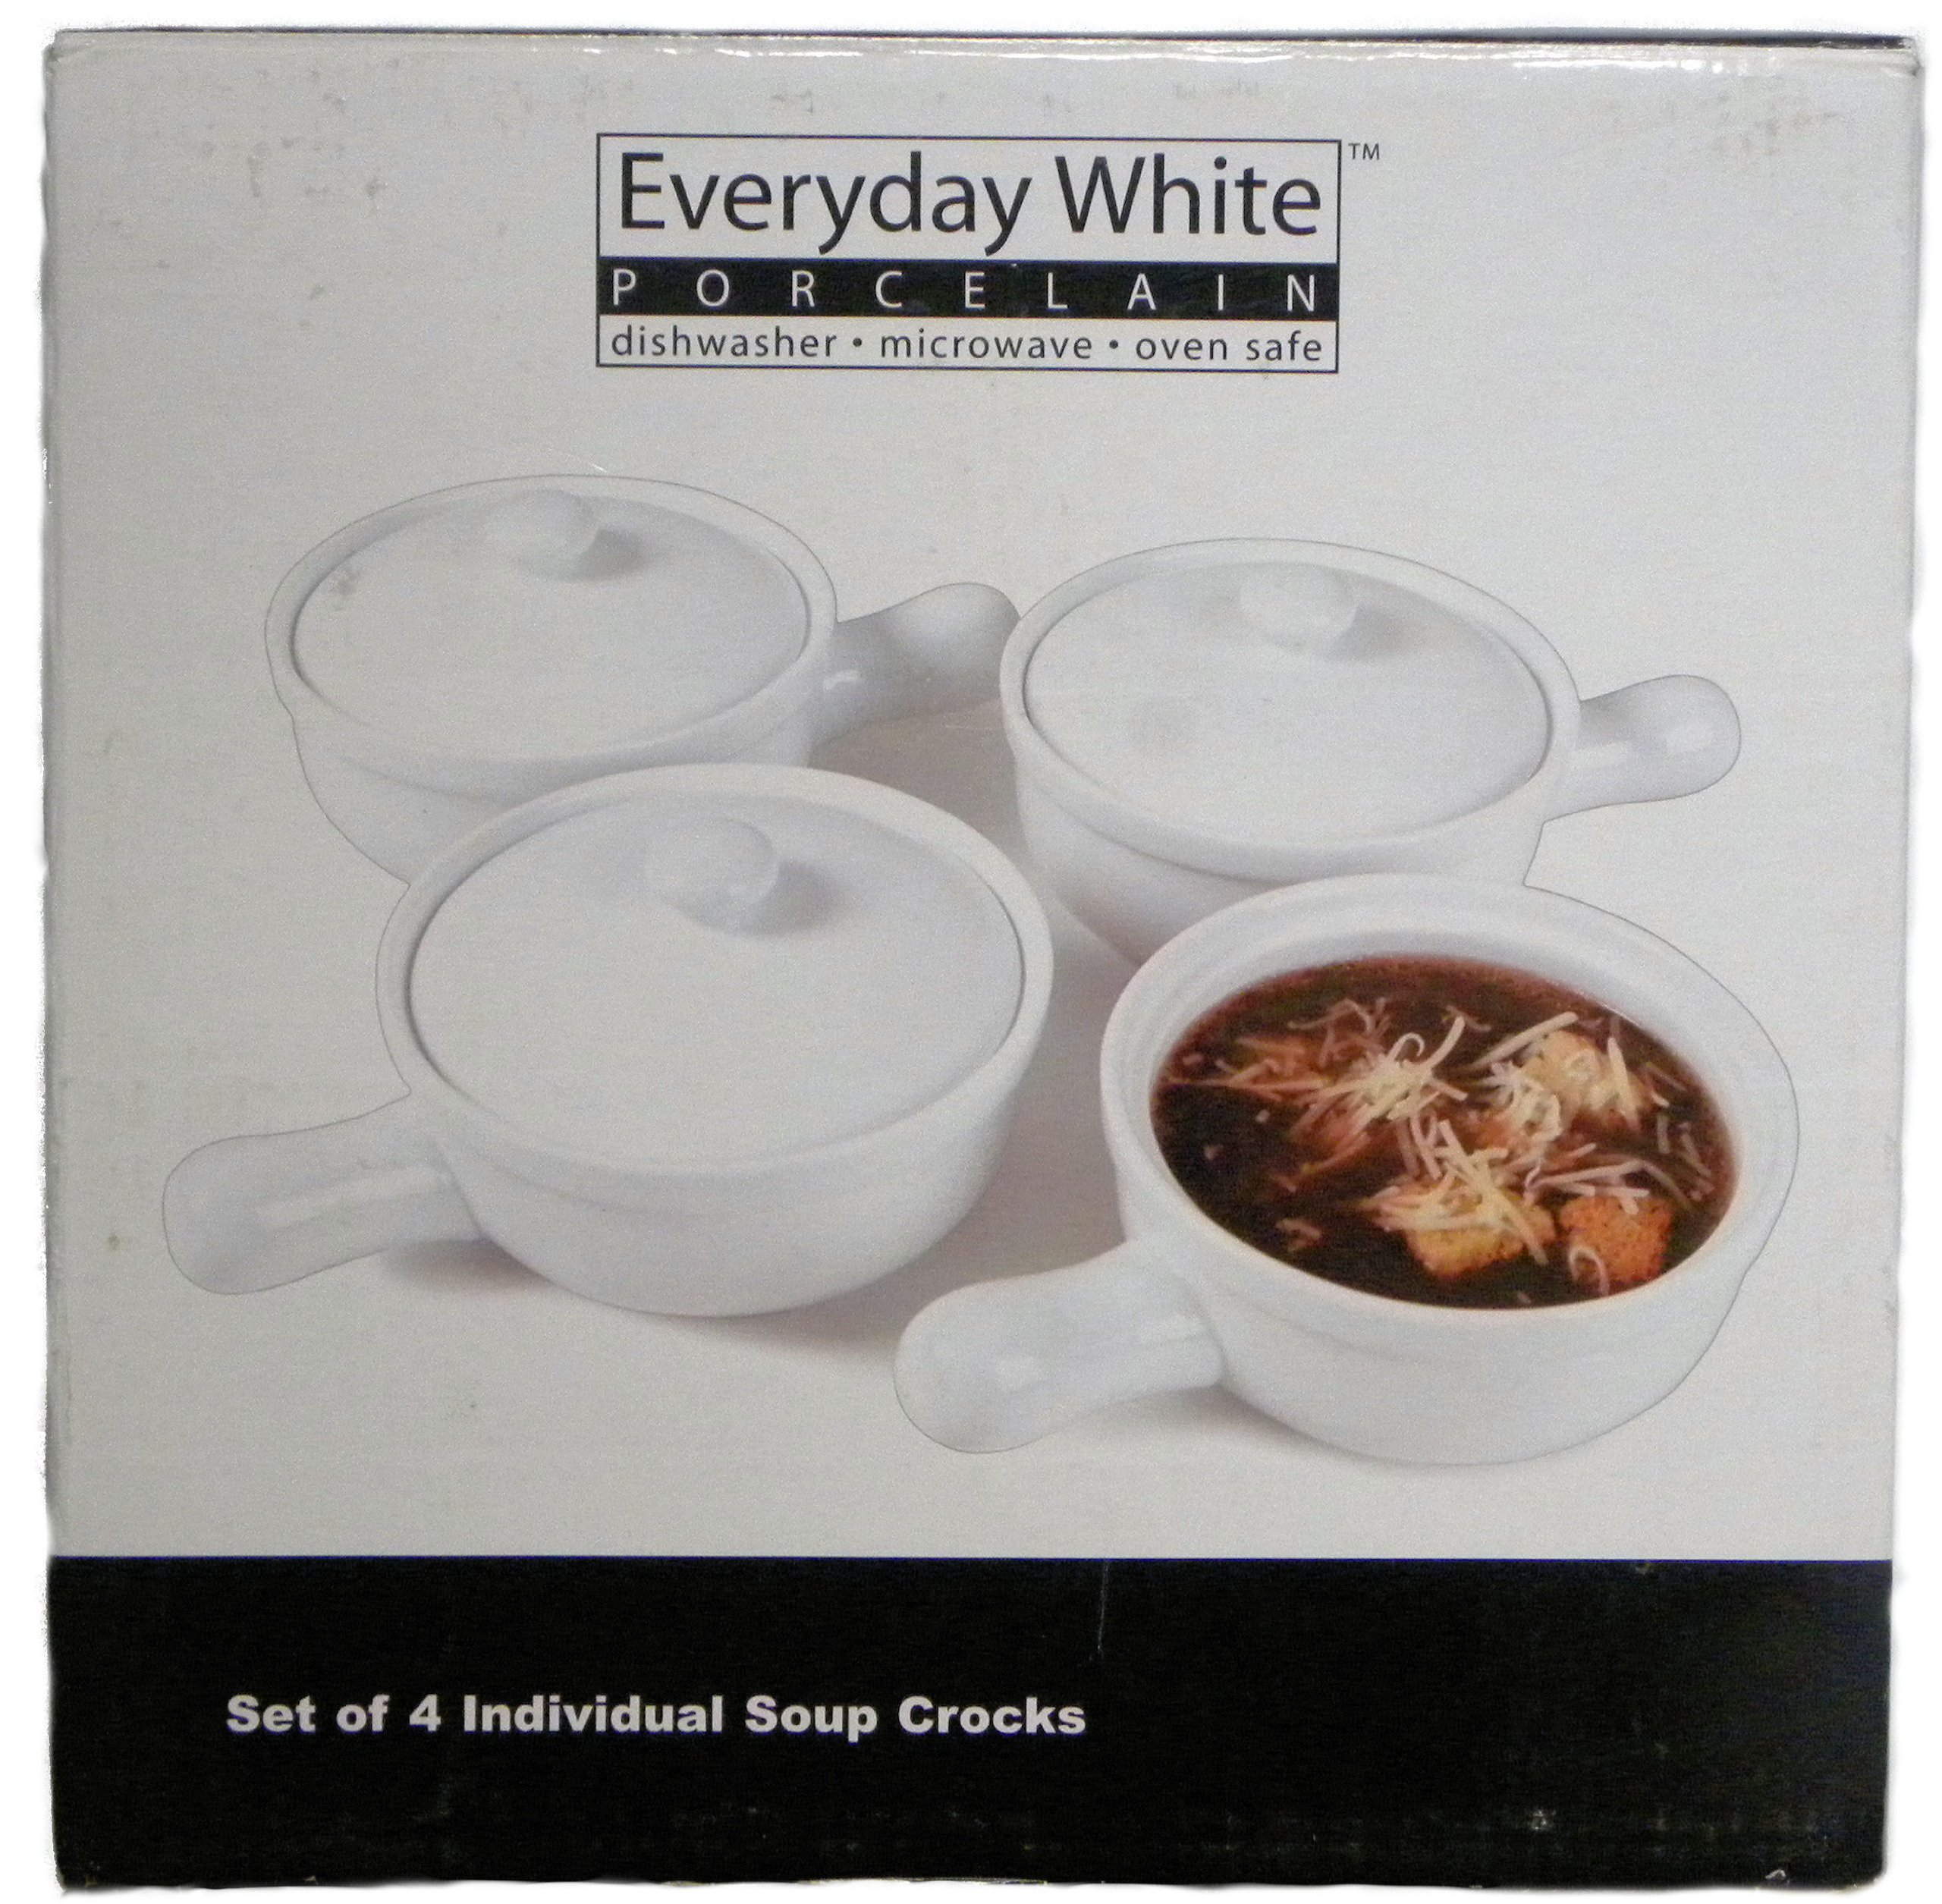 Everyday White Porcelain - 4 Soup Crocks with Lids